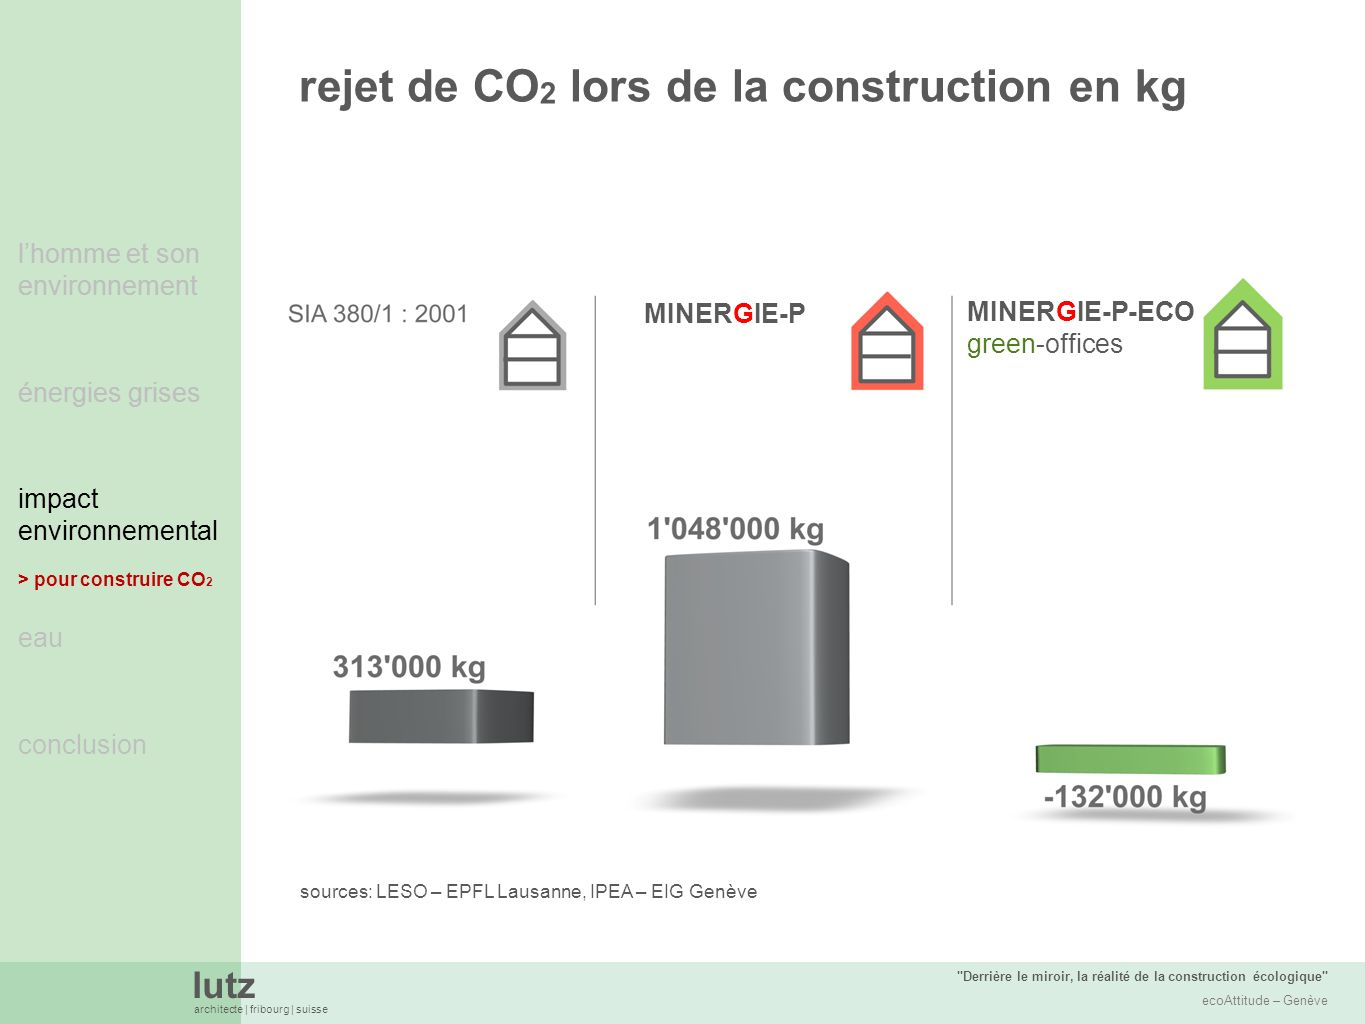 rejet de CO2 lors de la construction en kg